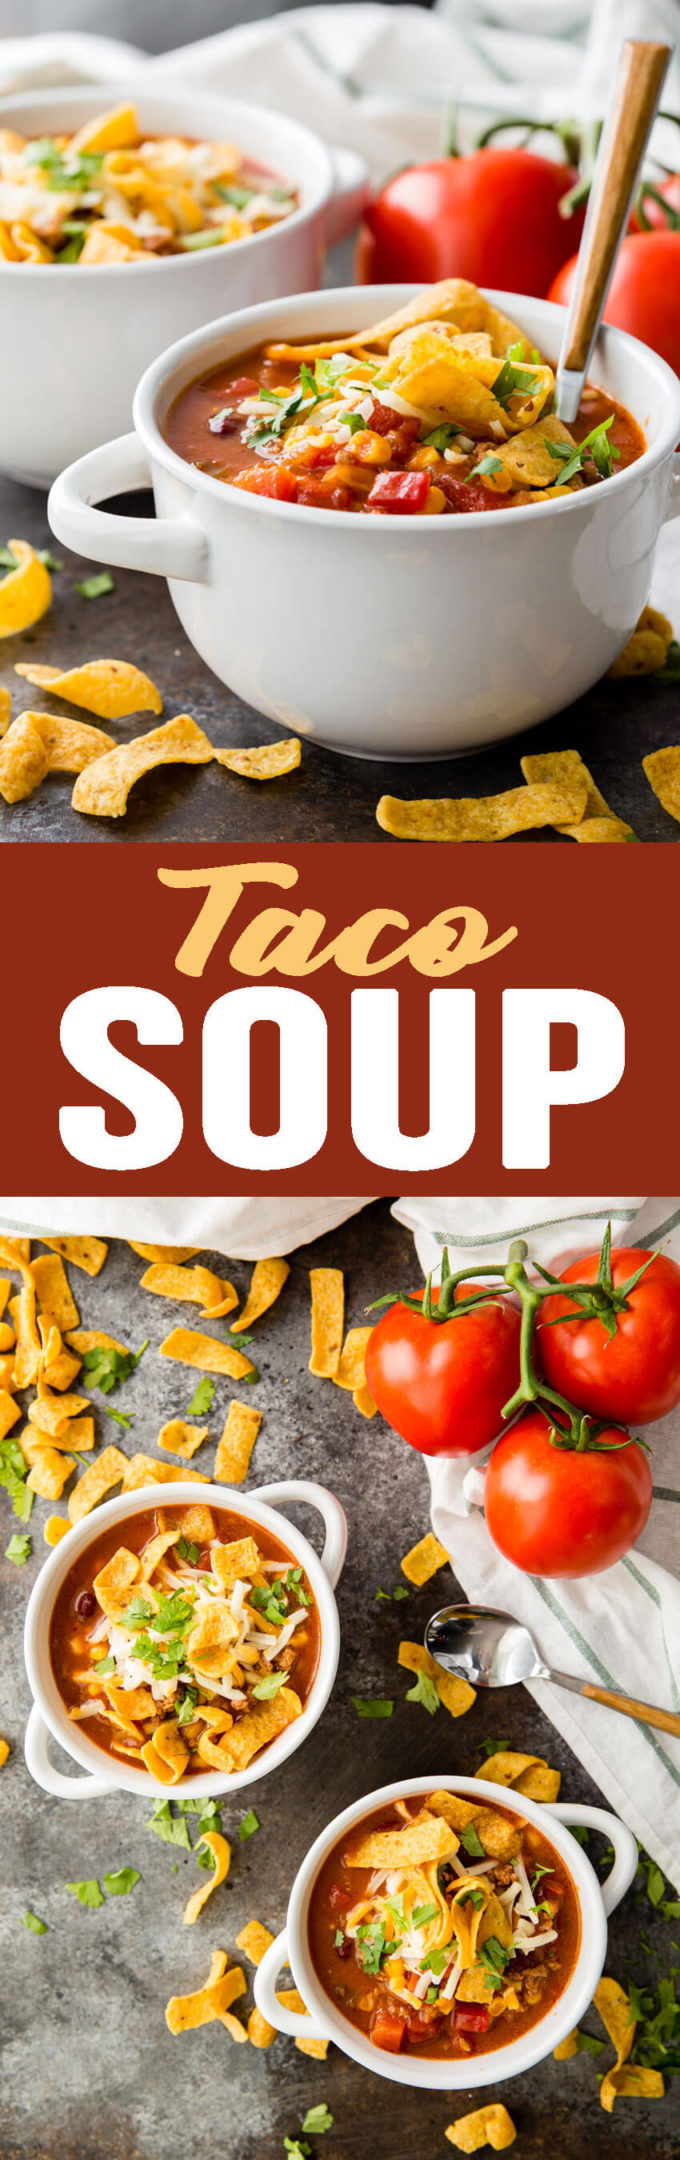 Taco Soup: The most flavorful and easy taco soup you will ever eat takes only 10-15 minutes to throw together. Healthy, easy, full of protein, fiber, and flavor; you can't go wrong with this soup!